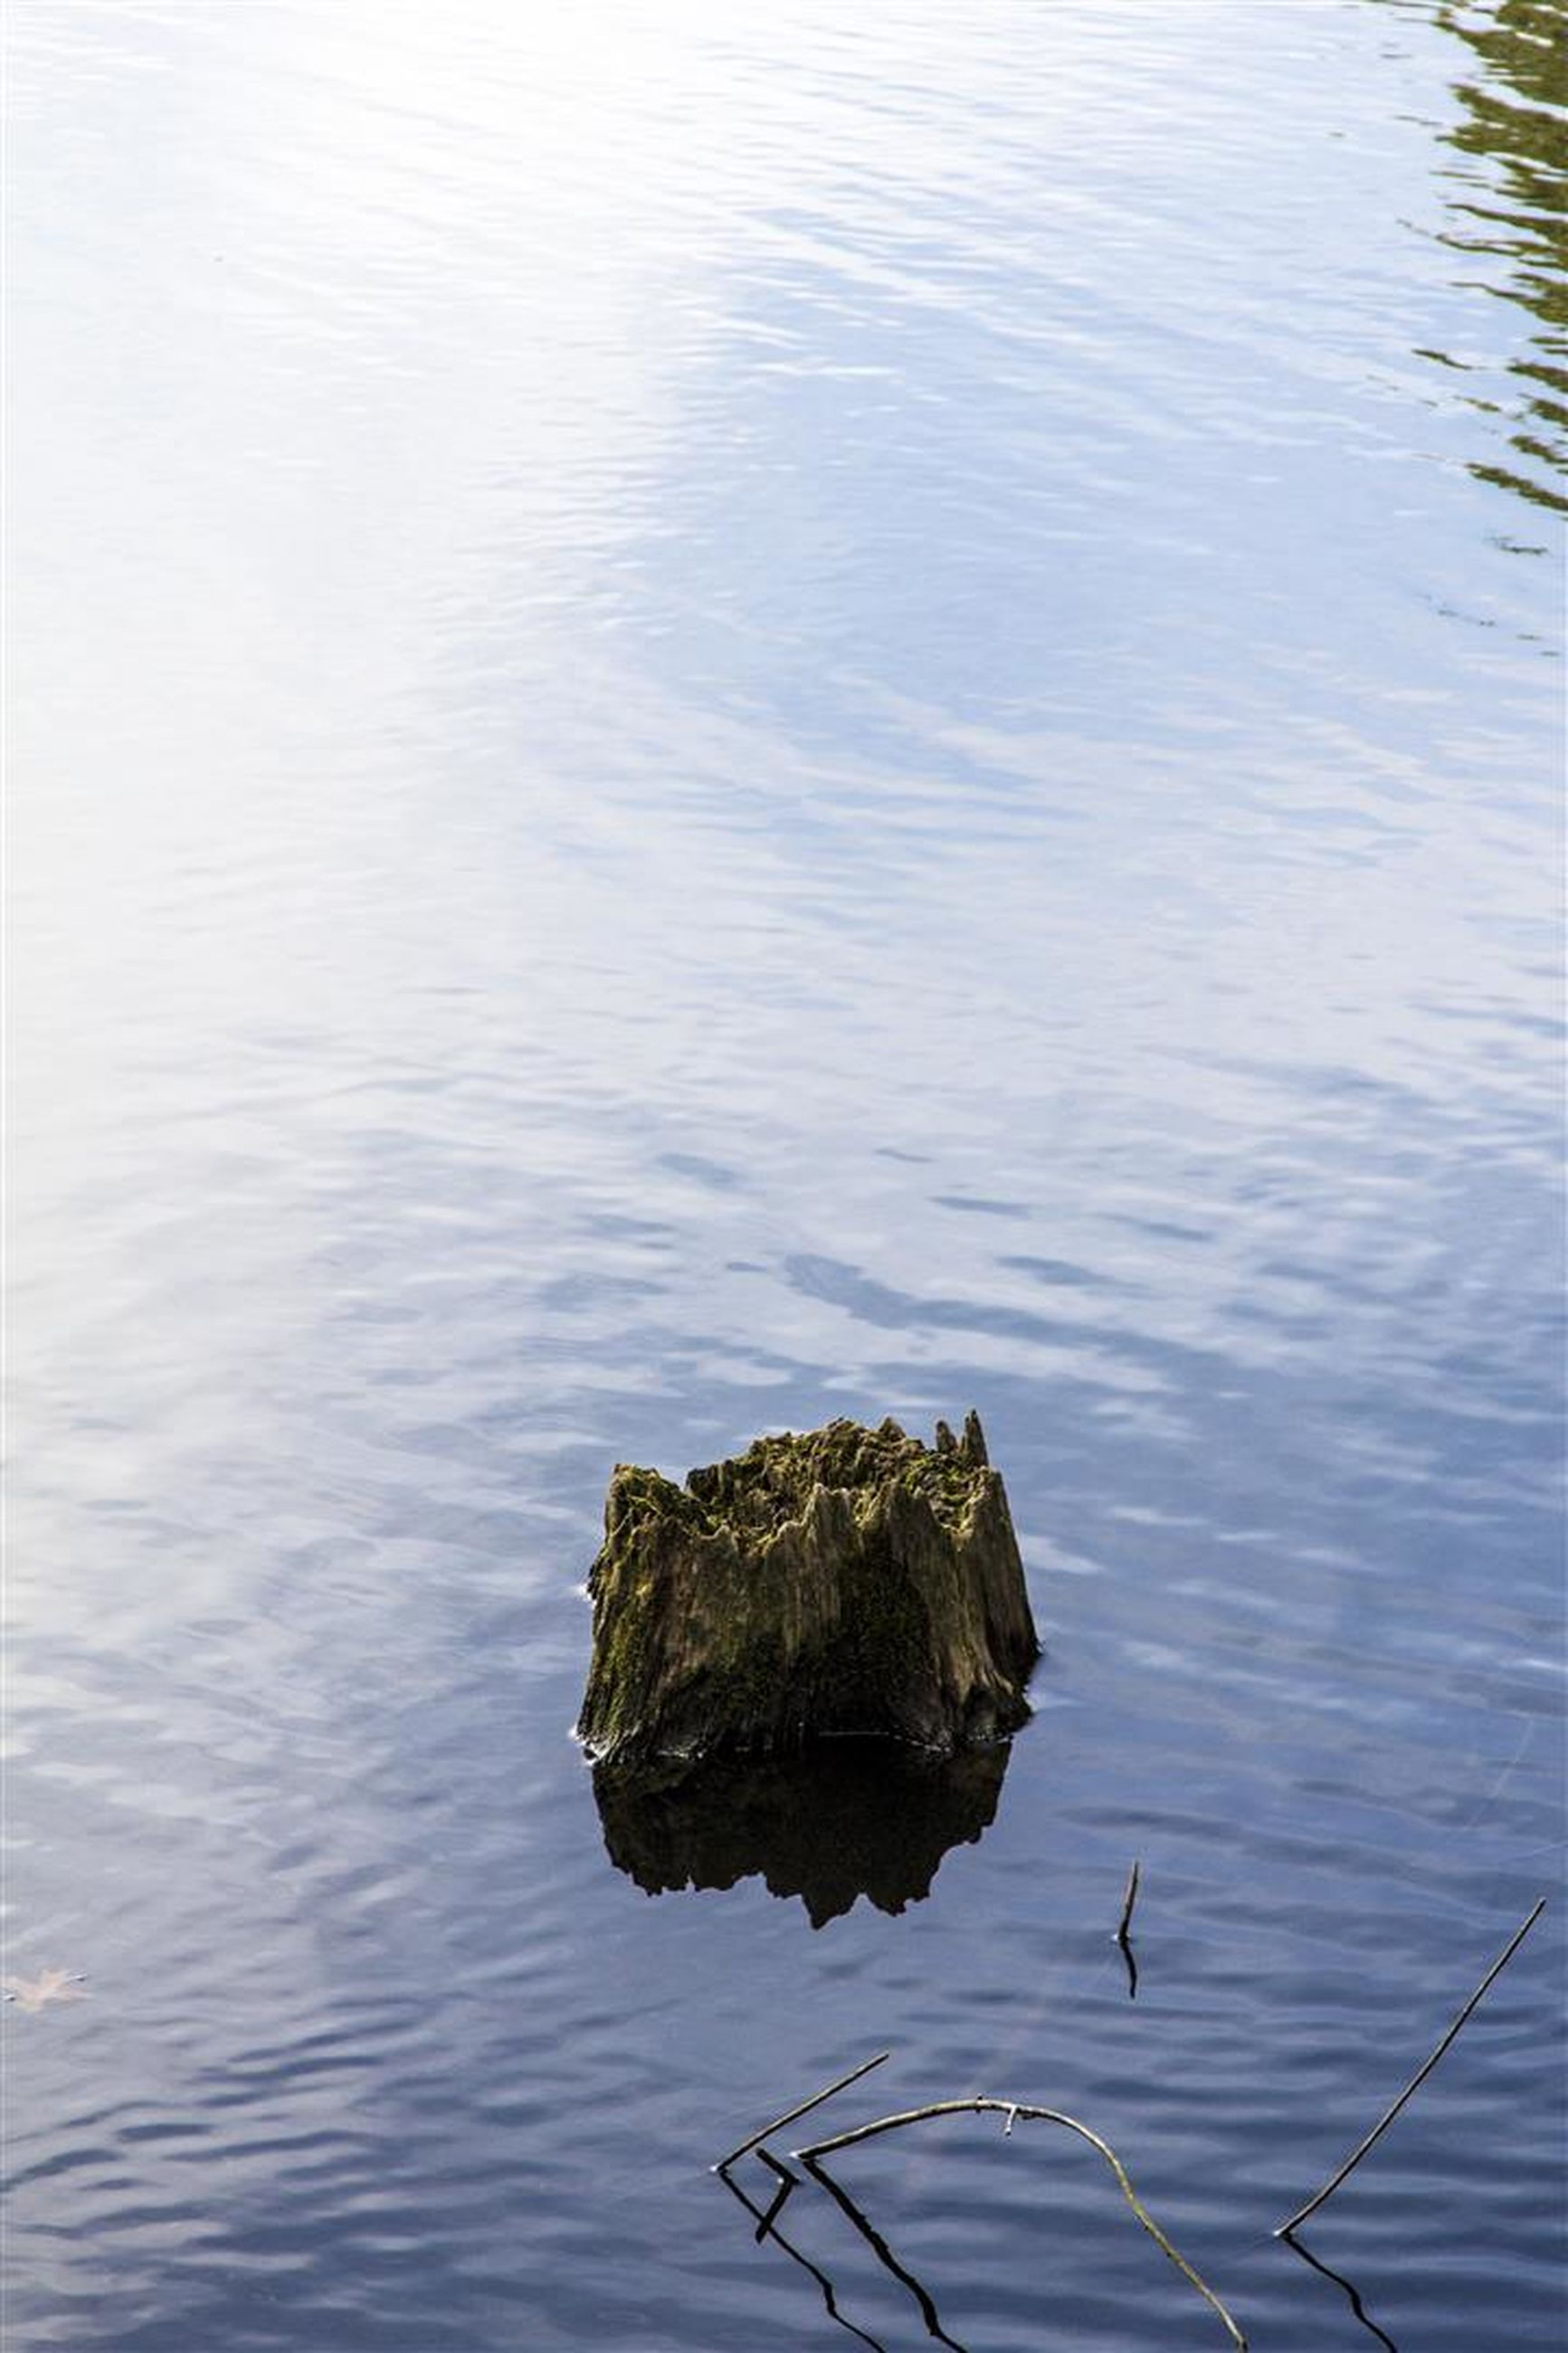 water, bird, animal themes, animals in the wild, lake, wildlife, waterfront, swimming, reflection, rippled, high angle view, nature, tranquility, duck, beauty in nature, one animal, rock - object, day, outdoors, floating on water